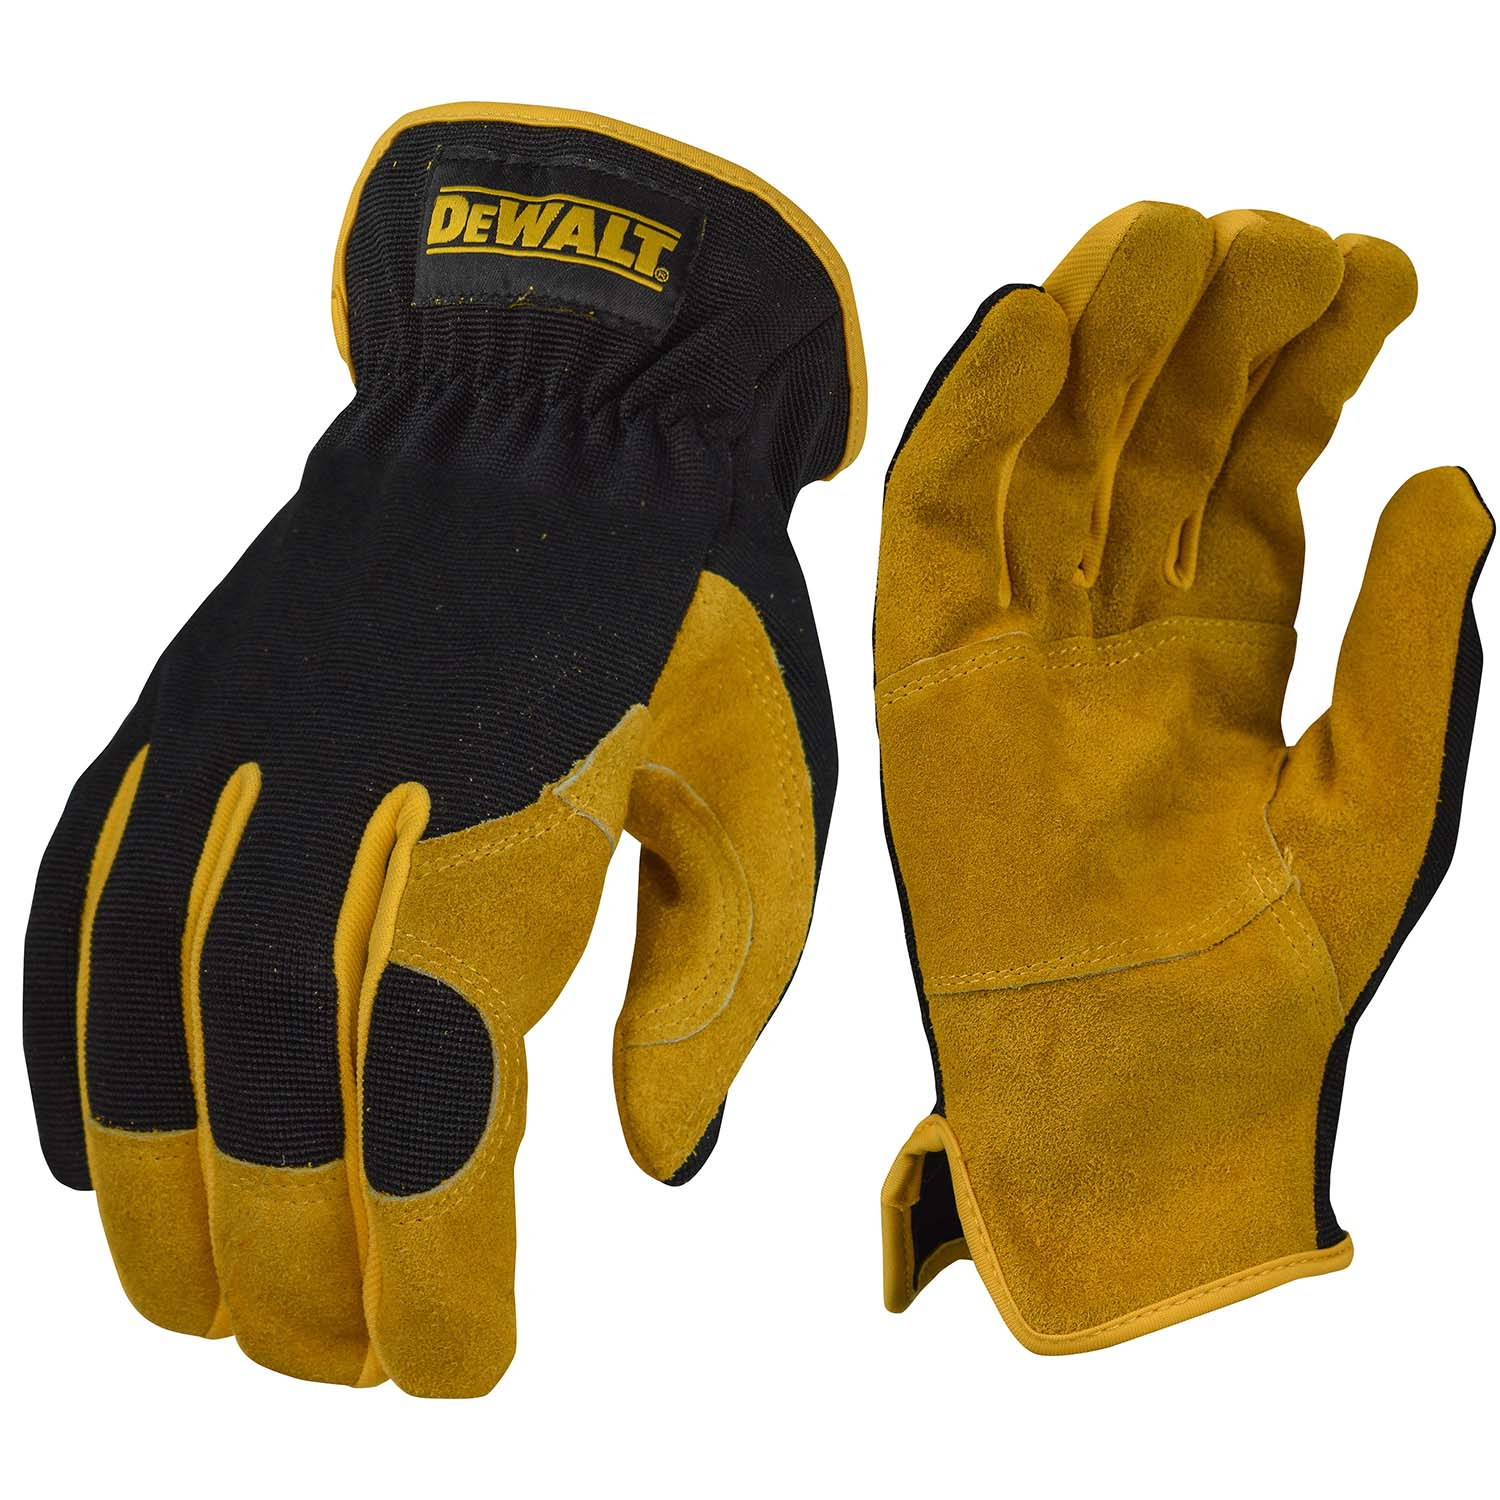 DEWALT DPG216 Leather Performance Hybrid Glove